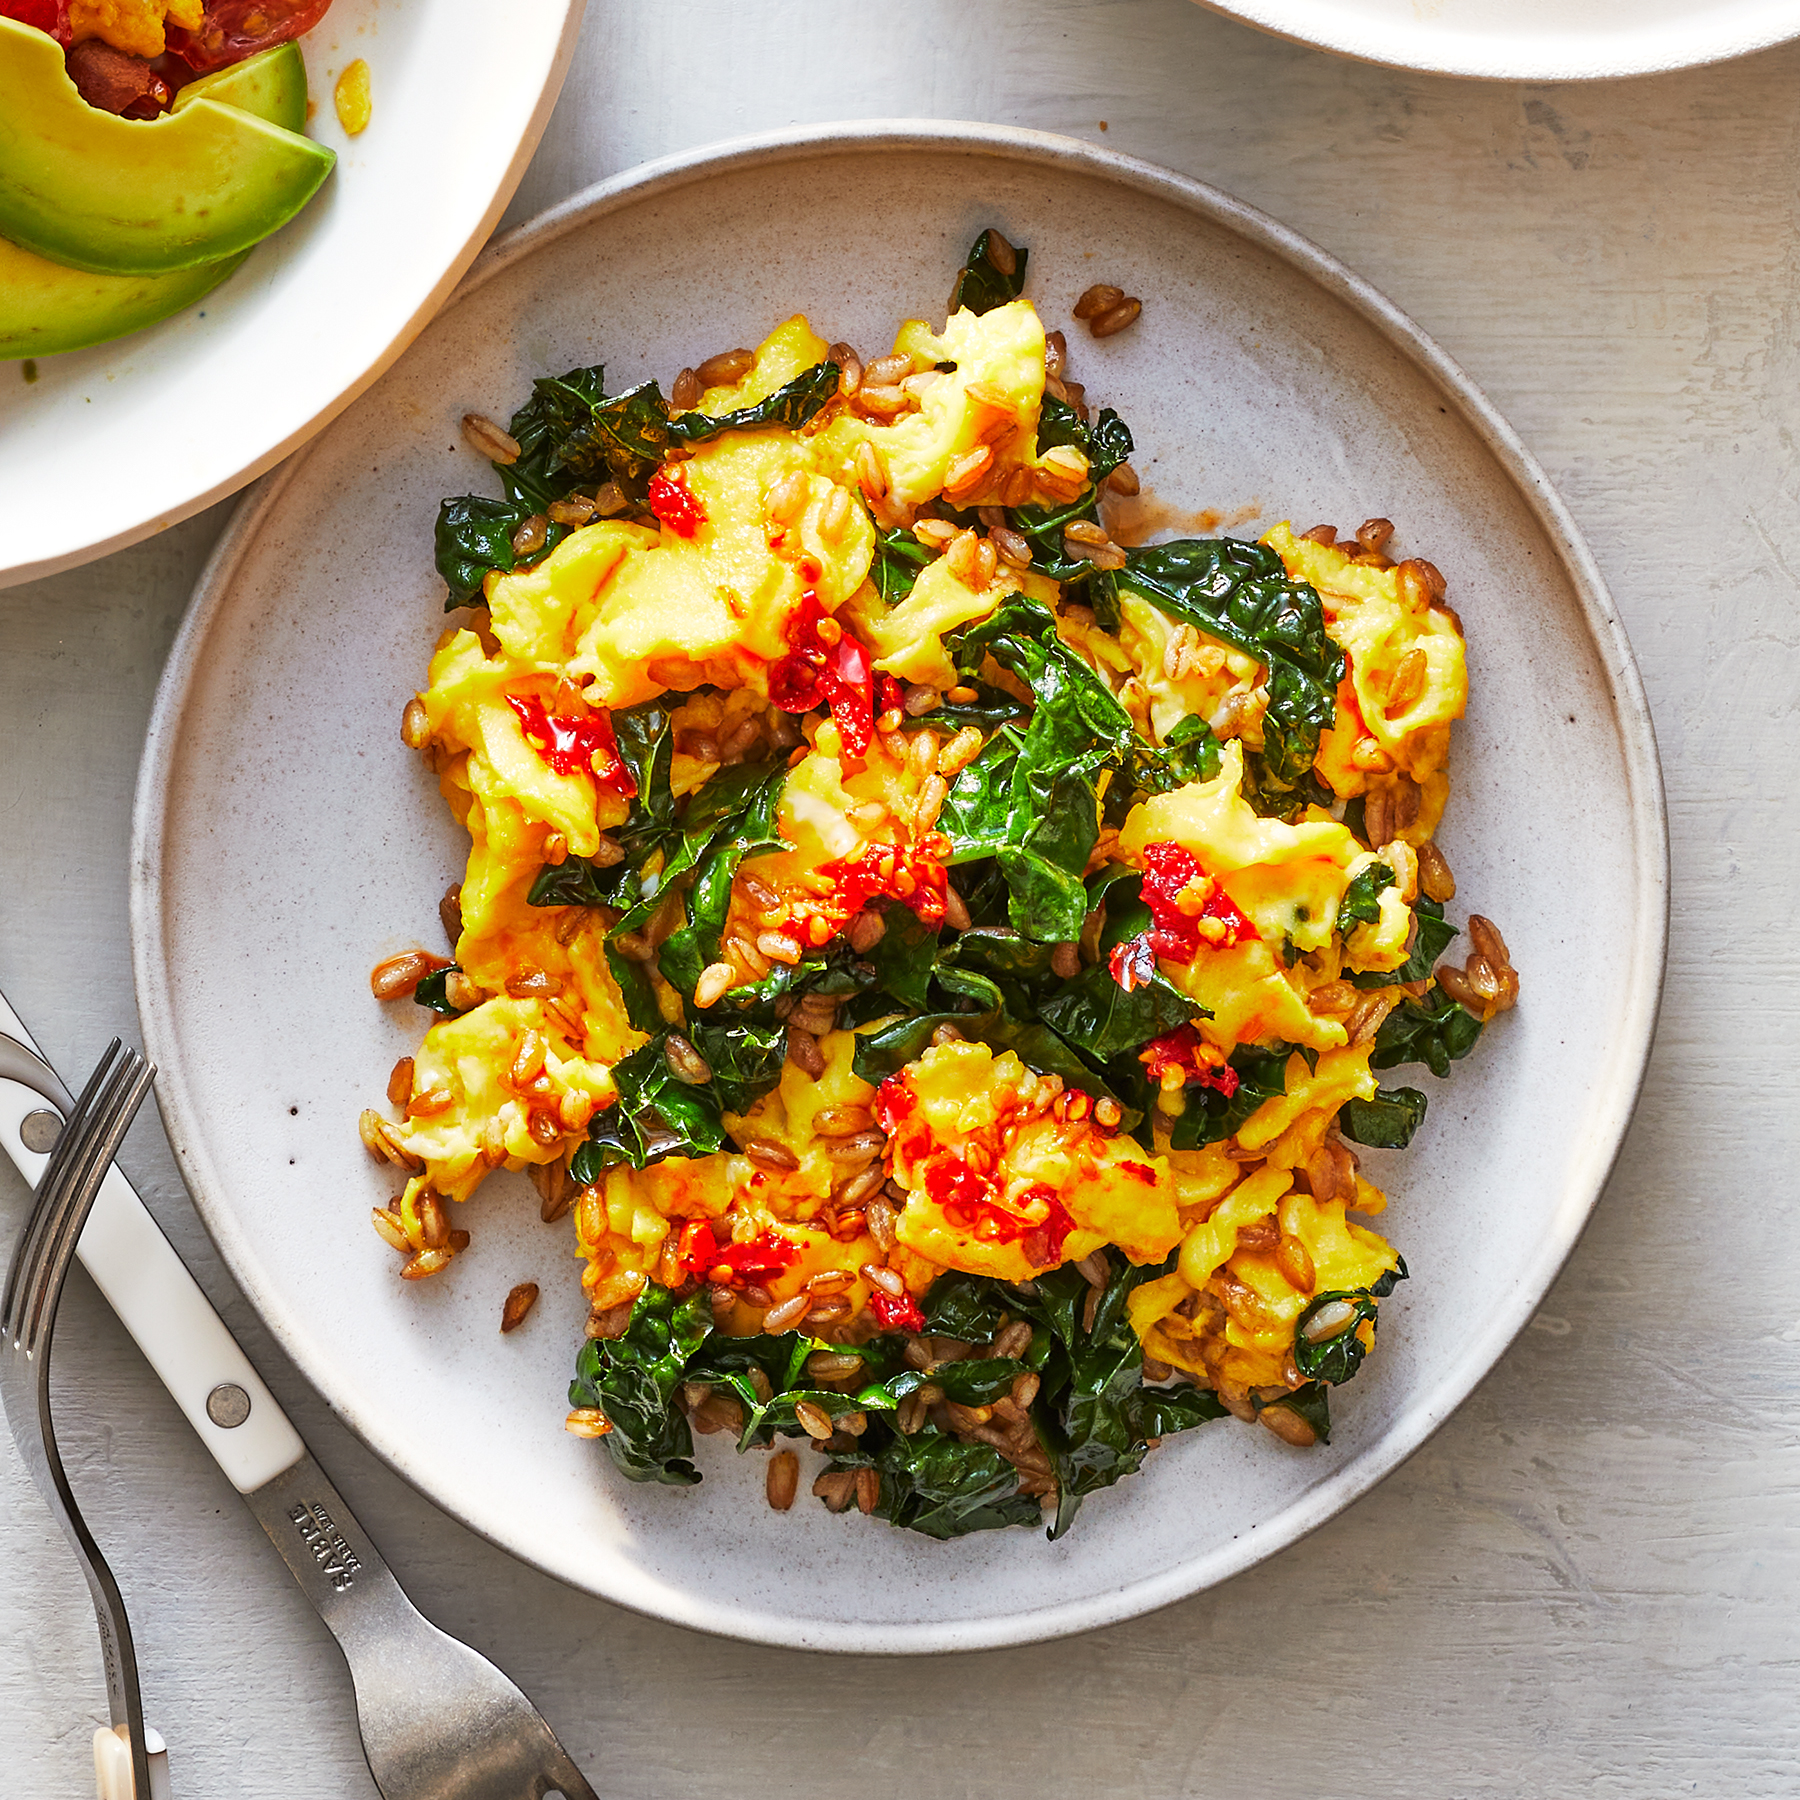 Grains and greens scramble recipe